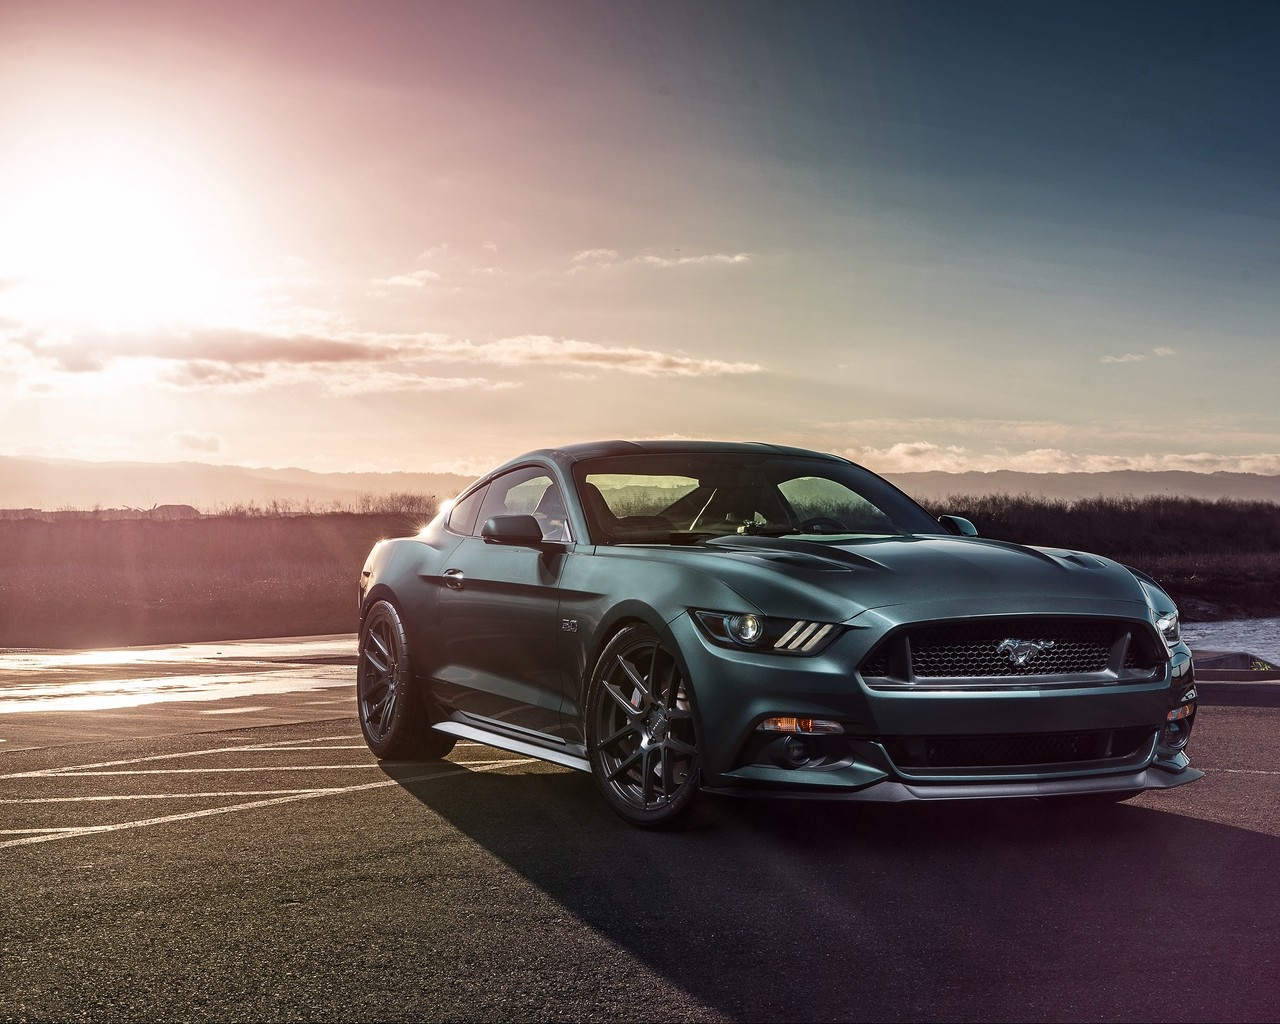 Ford Mustang Wallpaper Kolpaper Awesome Free Hd Wallpapers